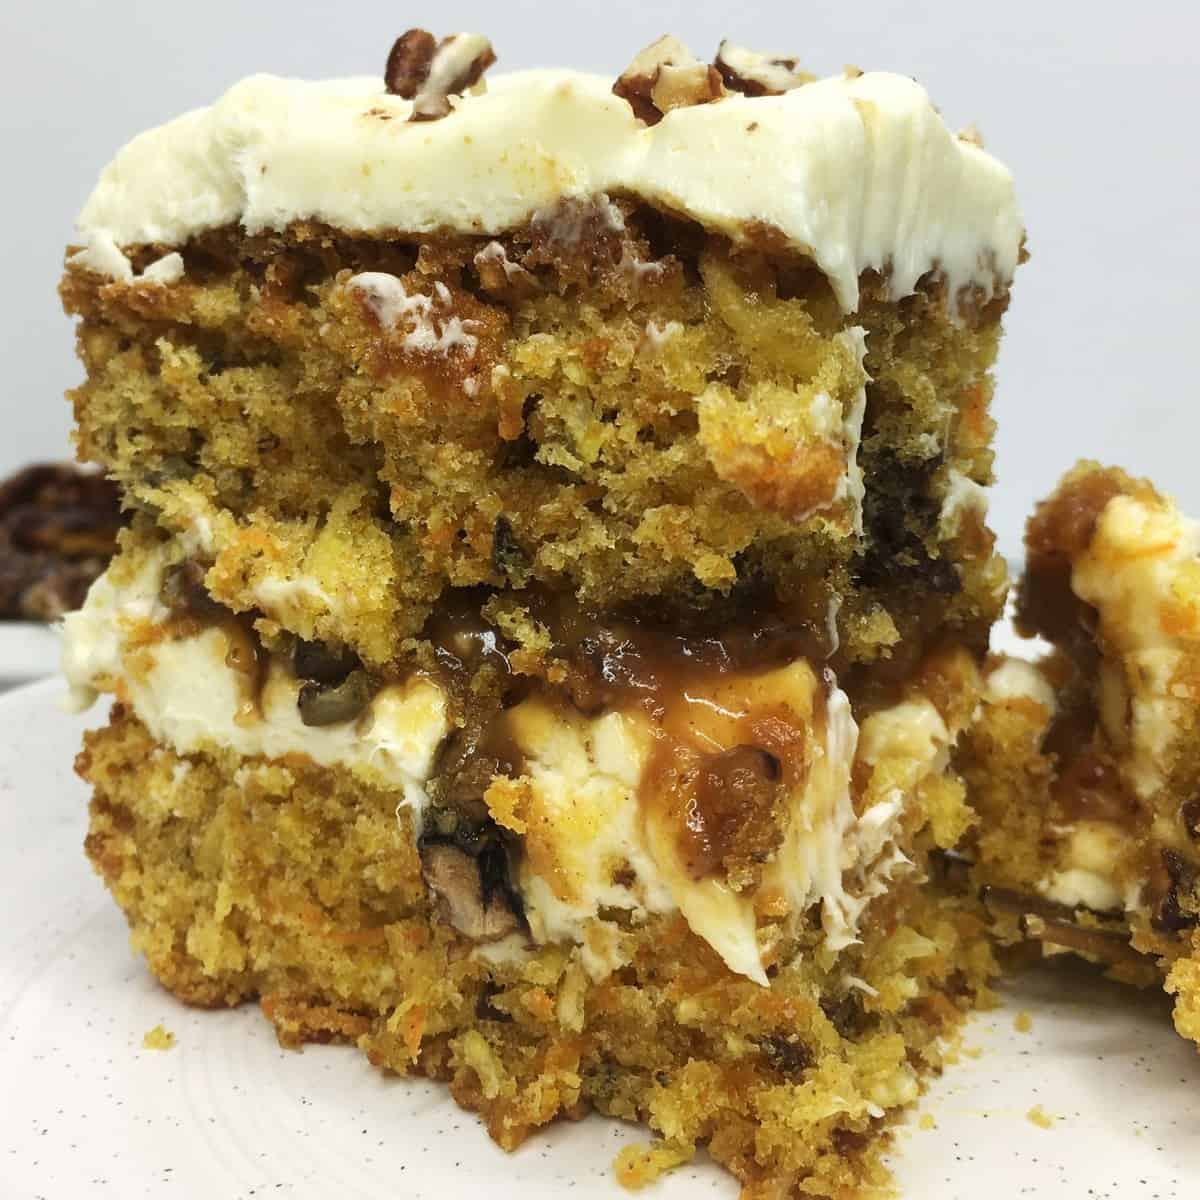 A single slice of carrot cake with pecans and caramel between the cake layers: Close up